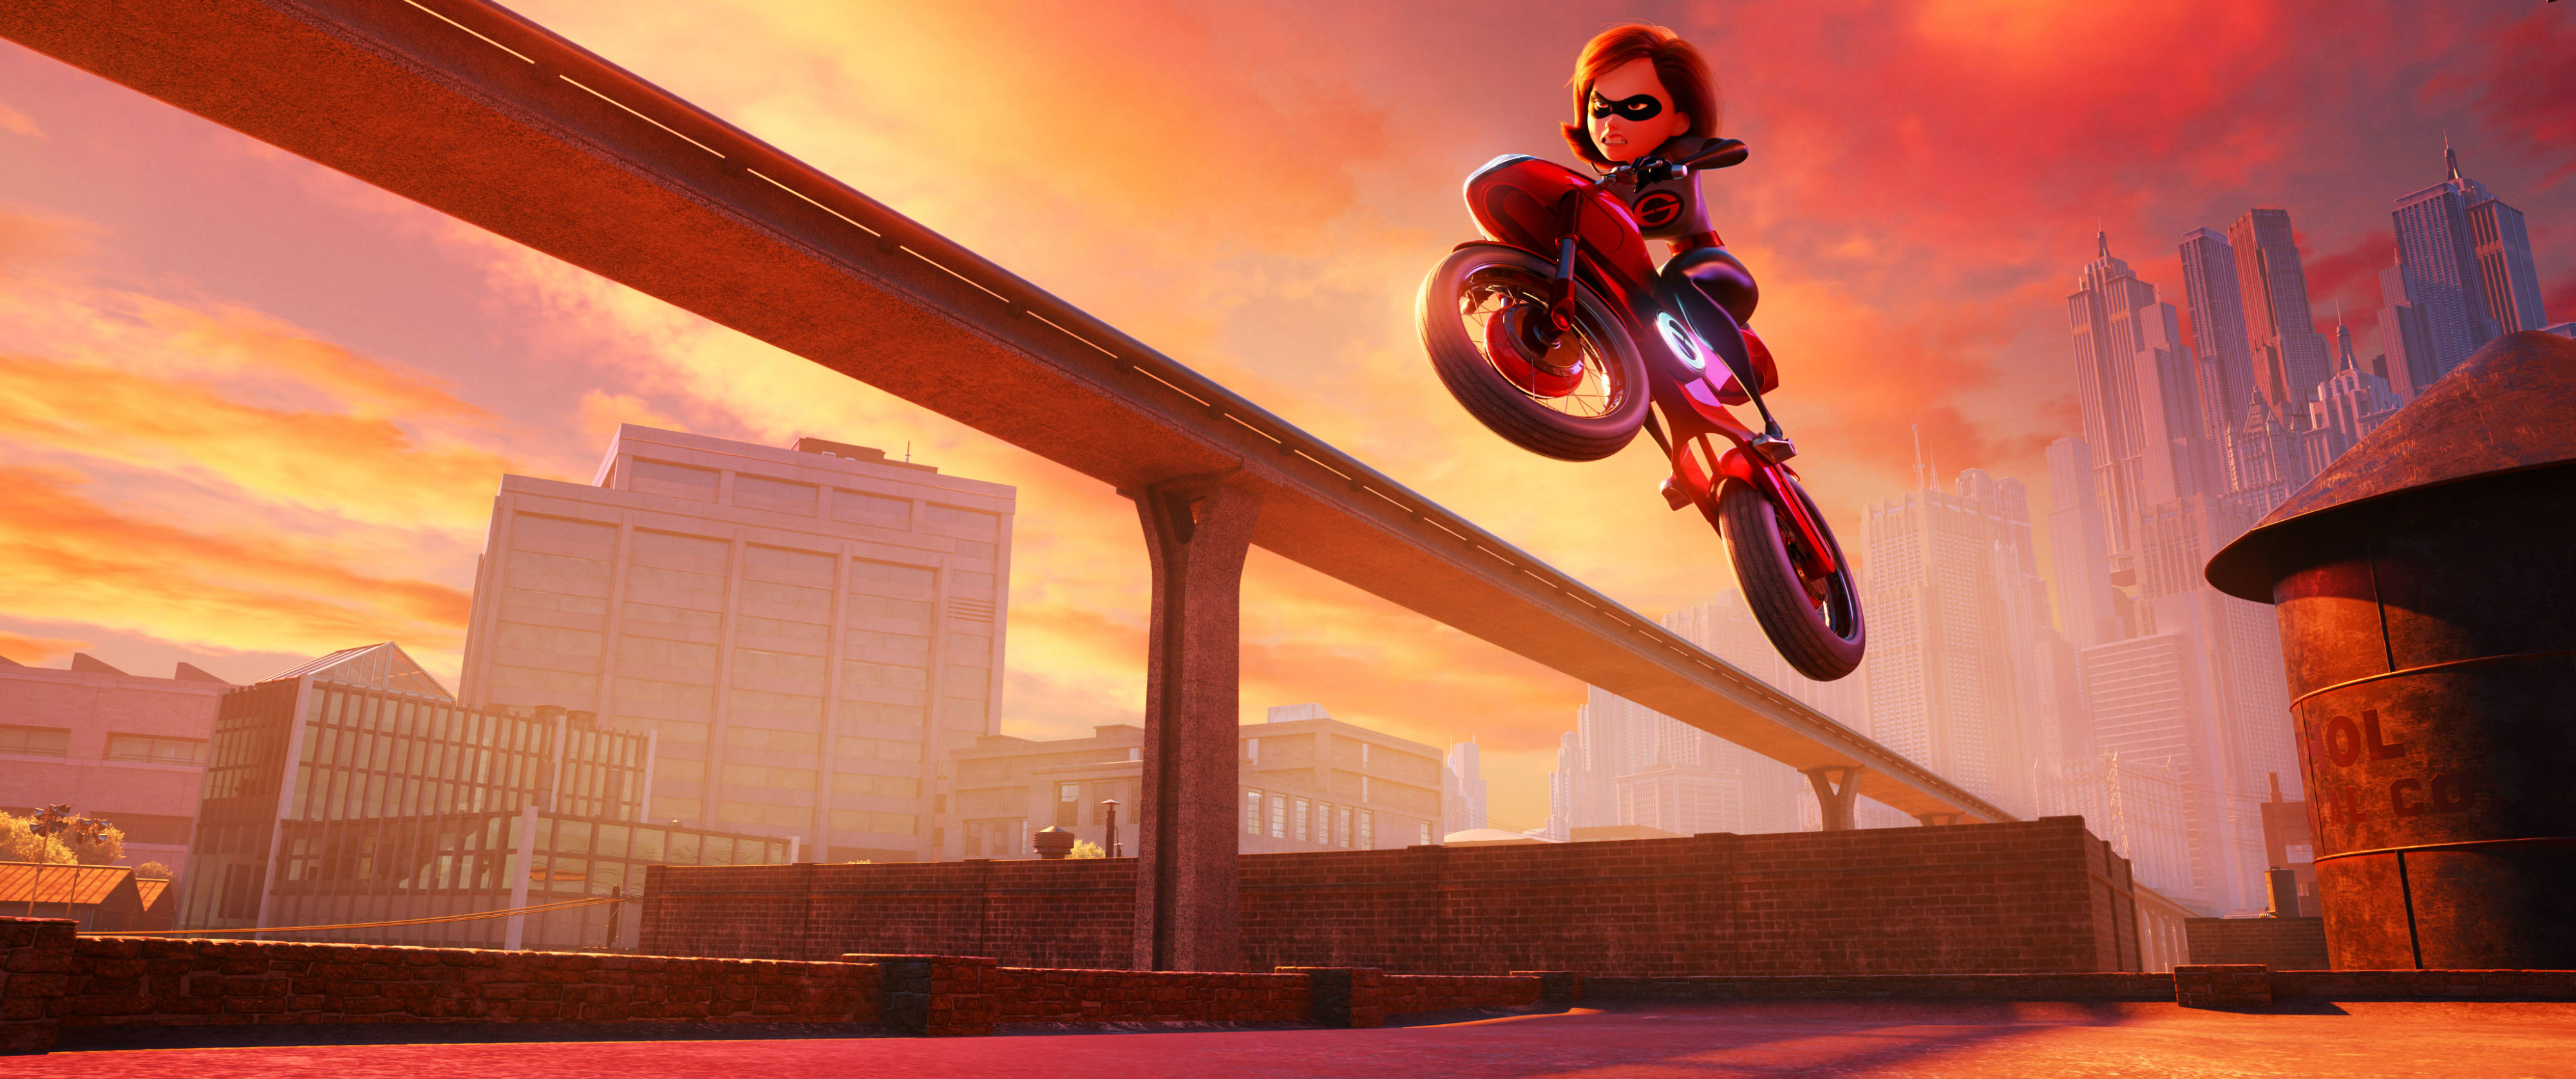 'Incredibles 2' Smashes Box Office Records